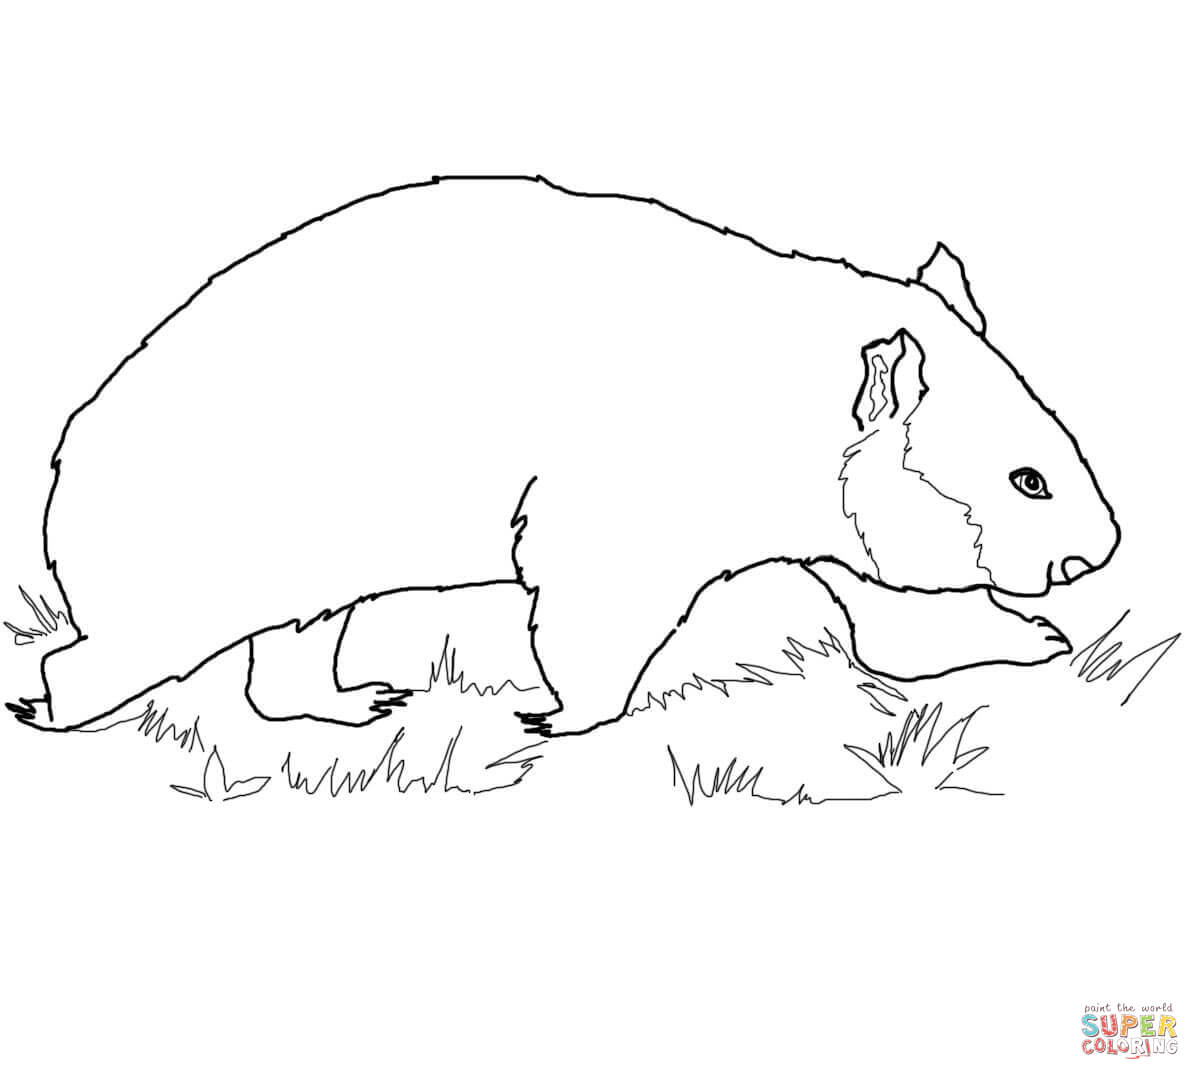 wombat colouring pages wombat coloring page coloring pages 4 u colouring pages wombat